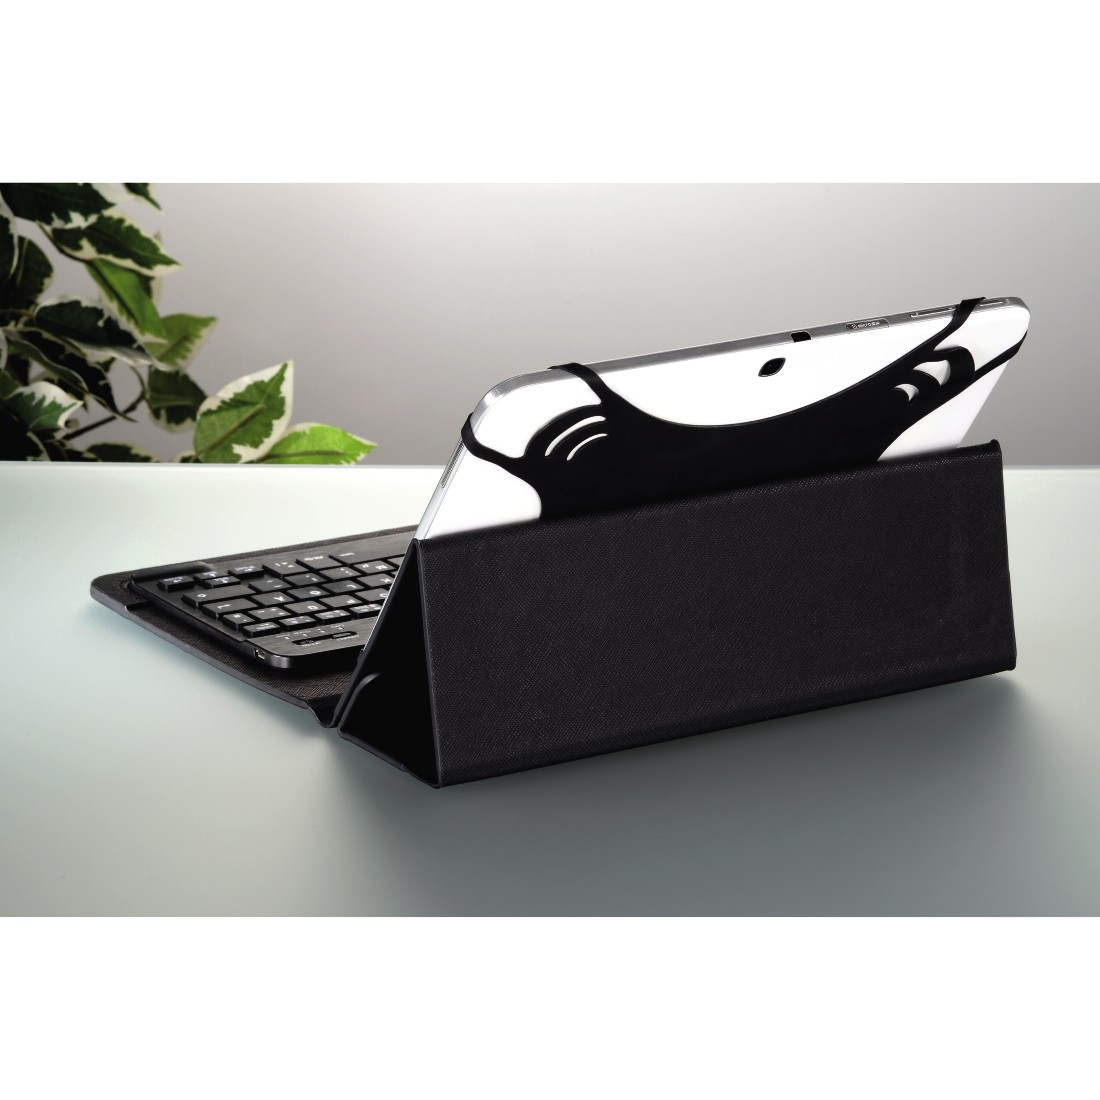 "awx4 High-Res Appliance 4 - Hama, Bluetooth® Keyboard with ""KEY4ALL X3100"" Tablet Bag"